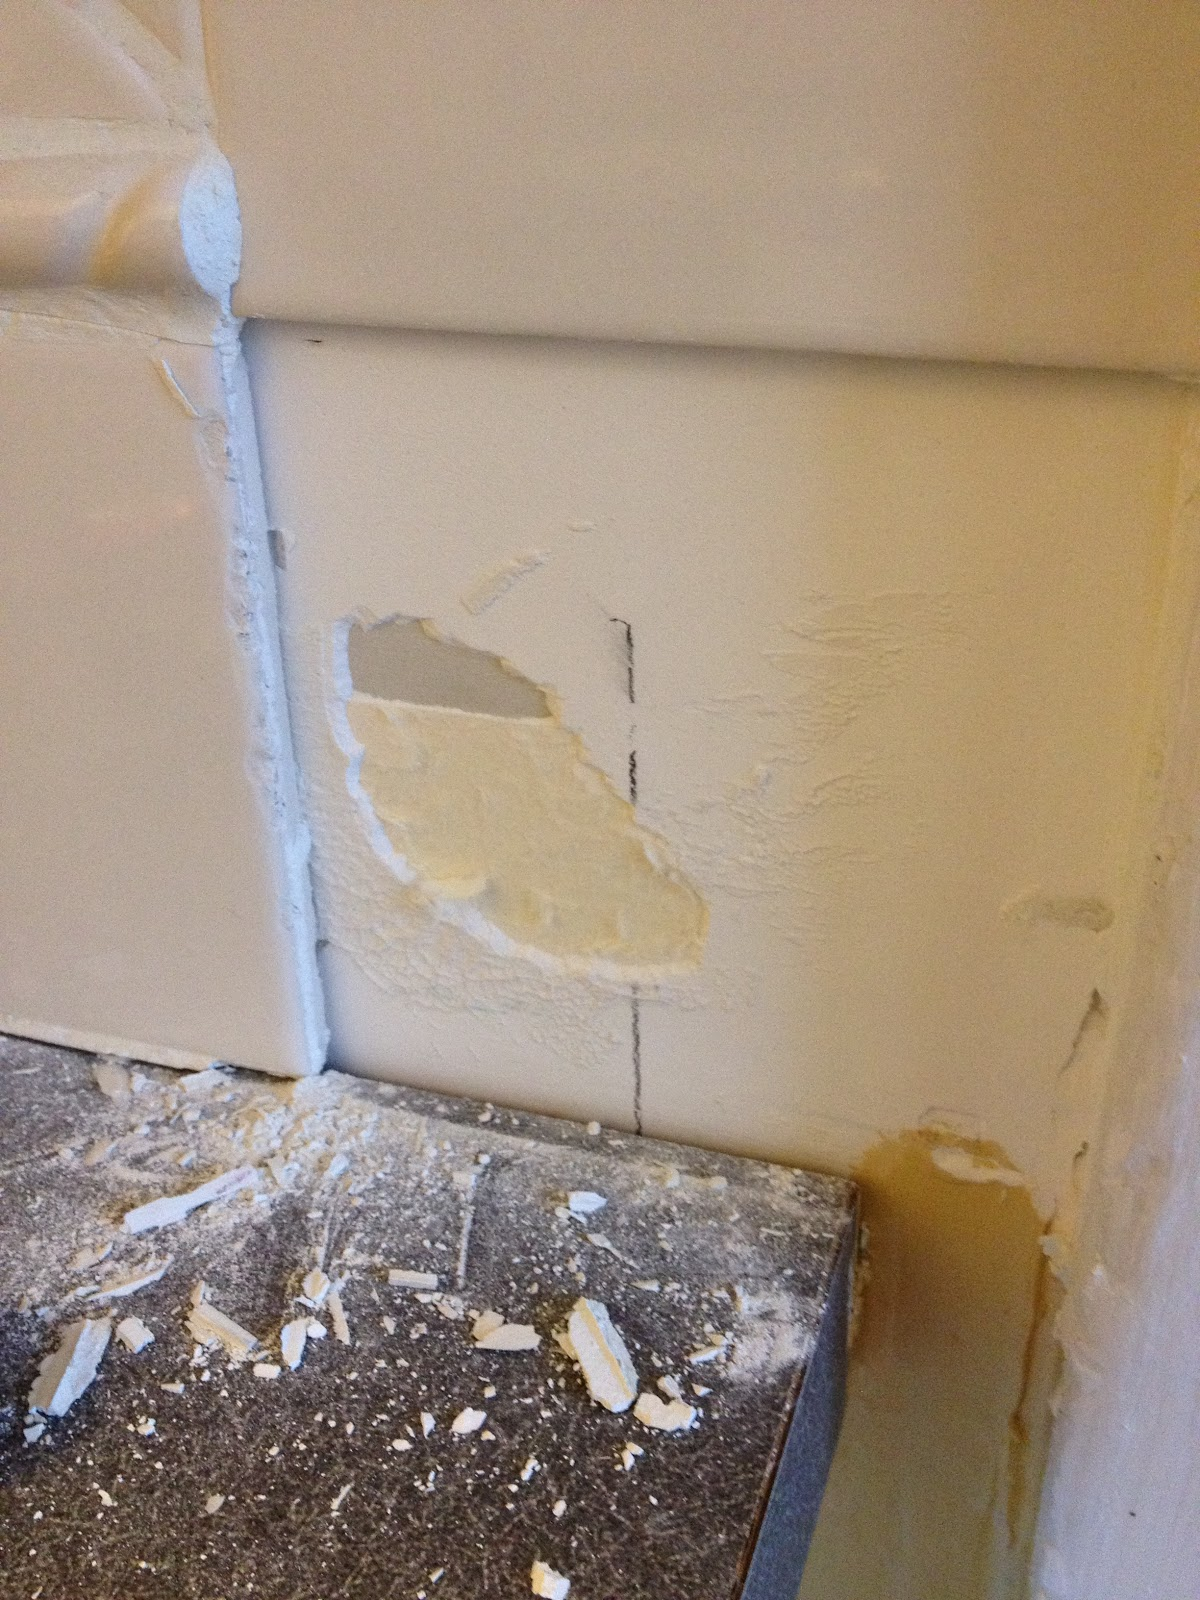 650 Square Feet The Consequences Of Chipping A Tile Off Of Your Kitchen Wall